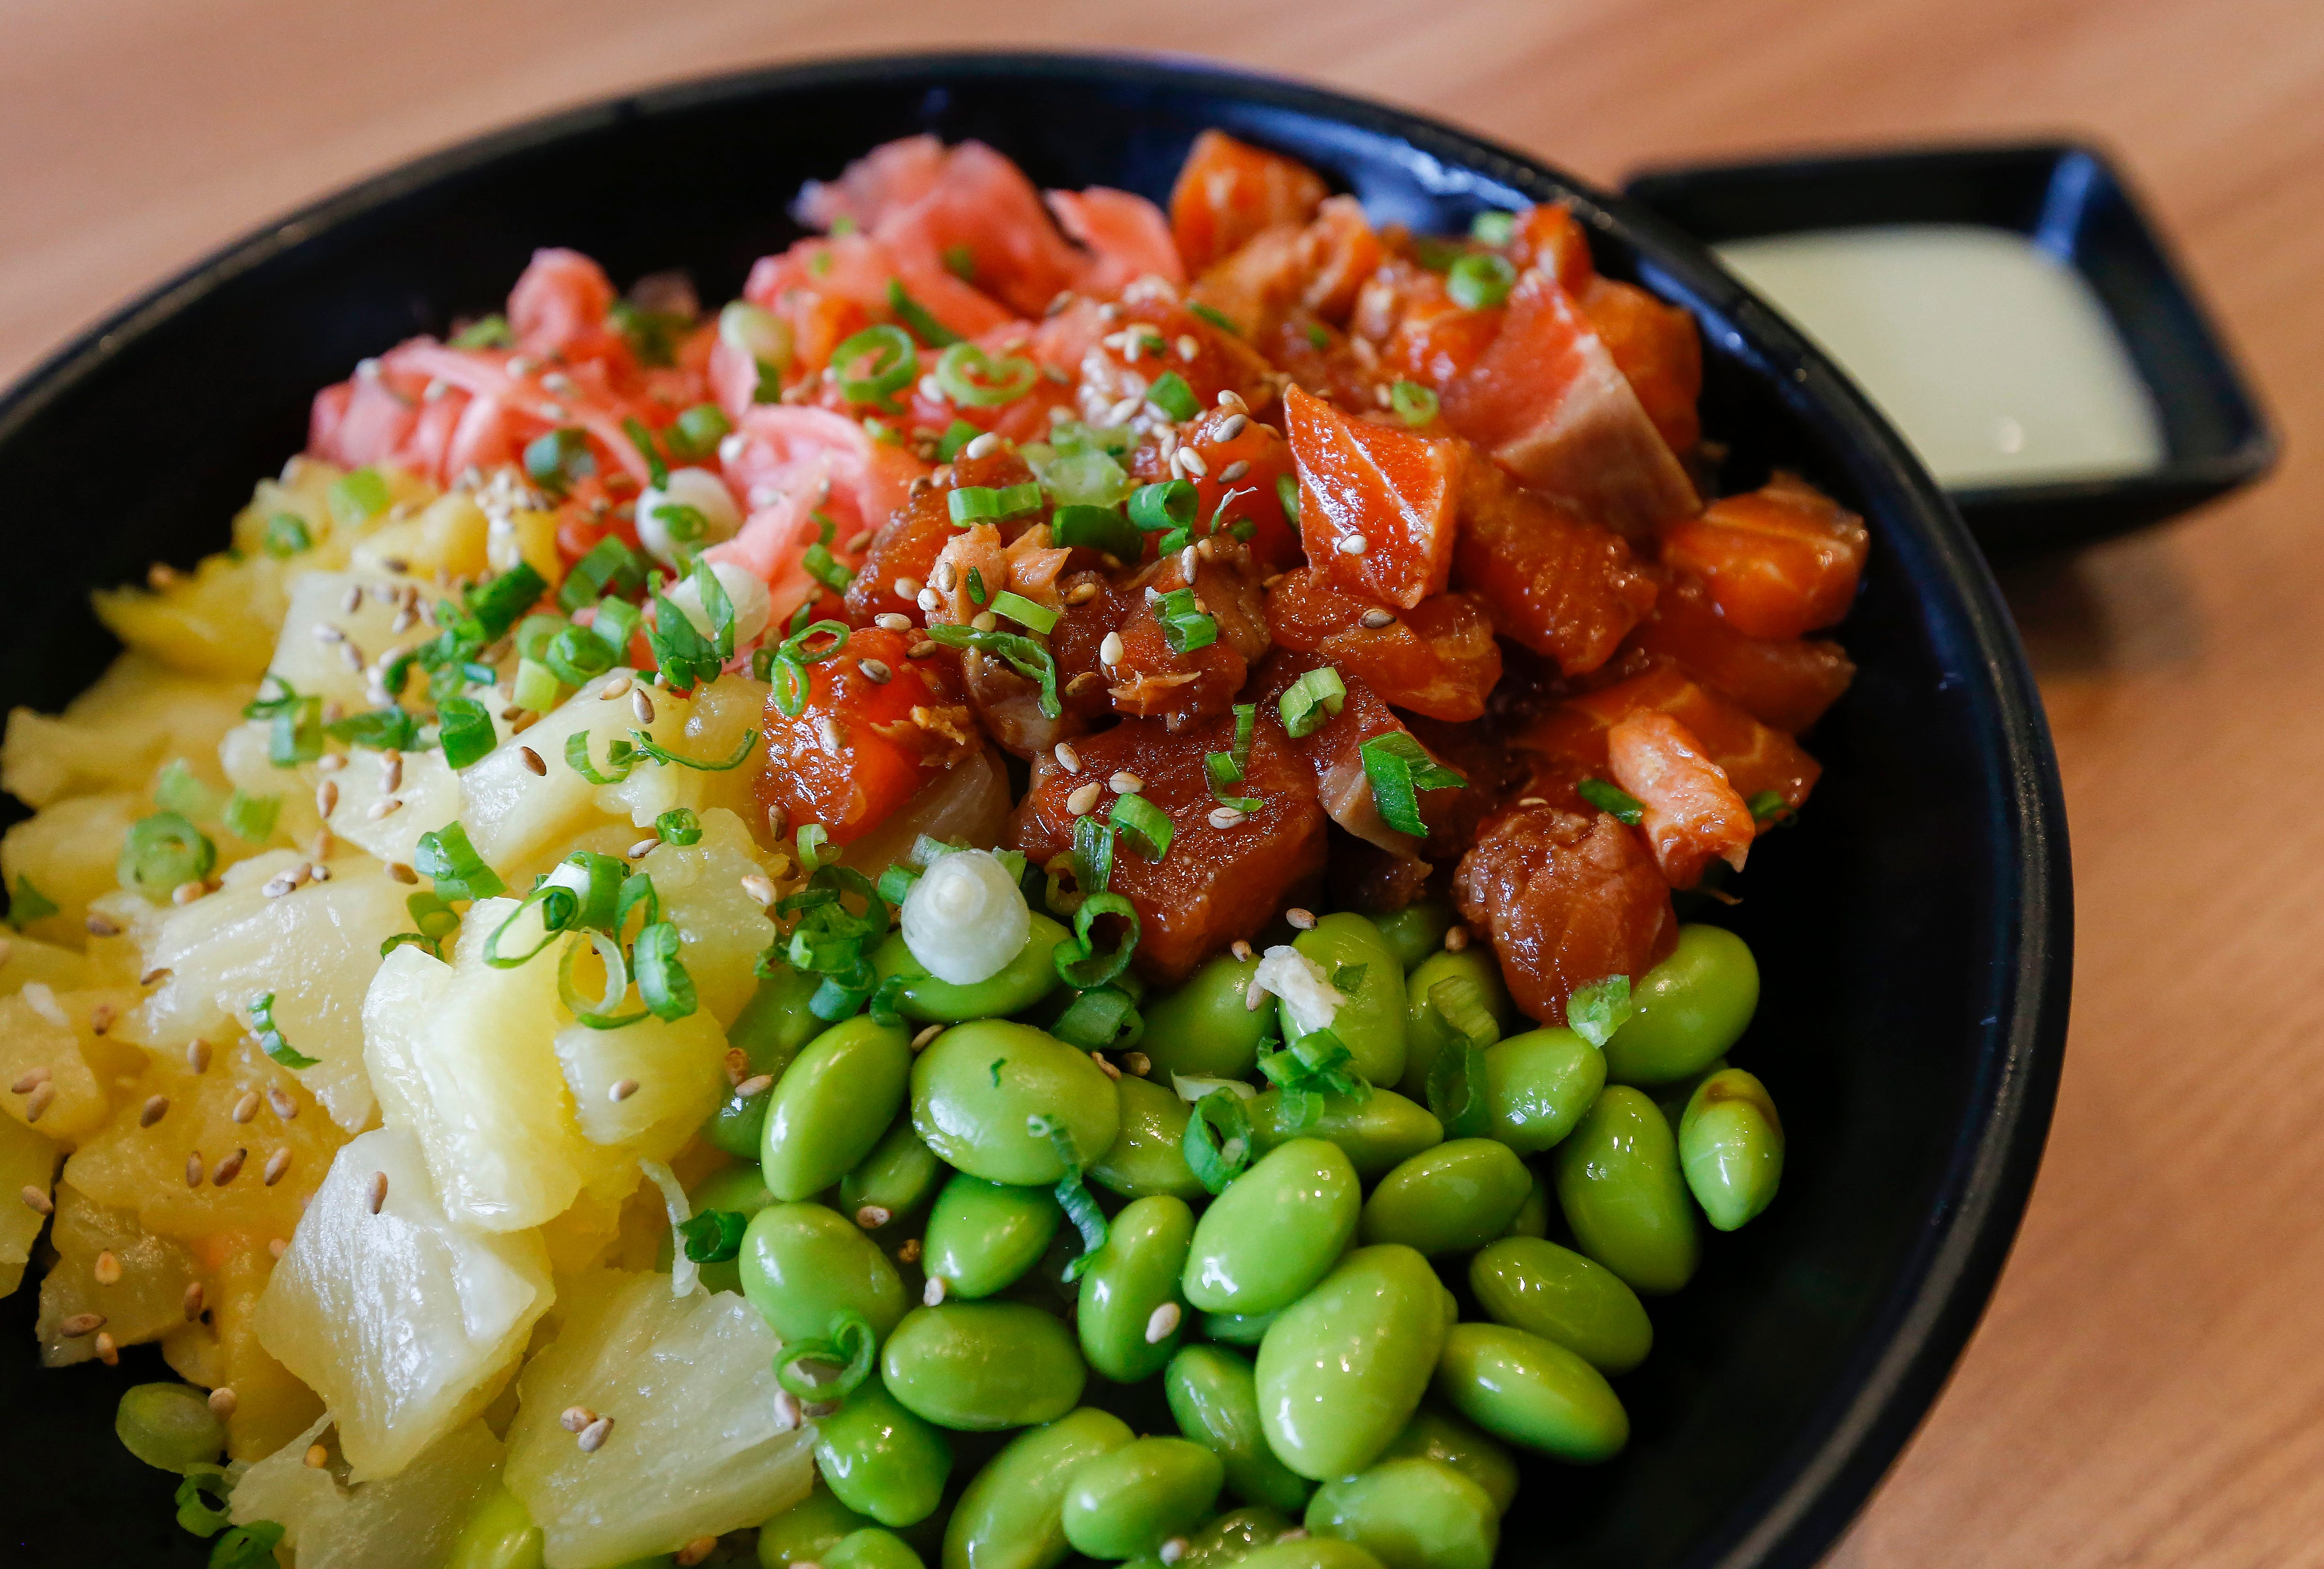 The salmon poke bowl with pineapple, edamame and ginger at Kuma Japanese Ramen & Sushi, which is located at 3405 E. Battlefield Road.